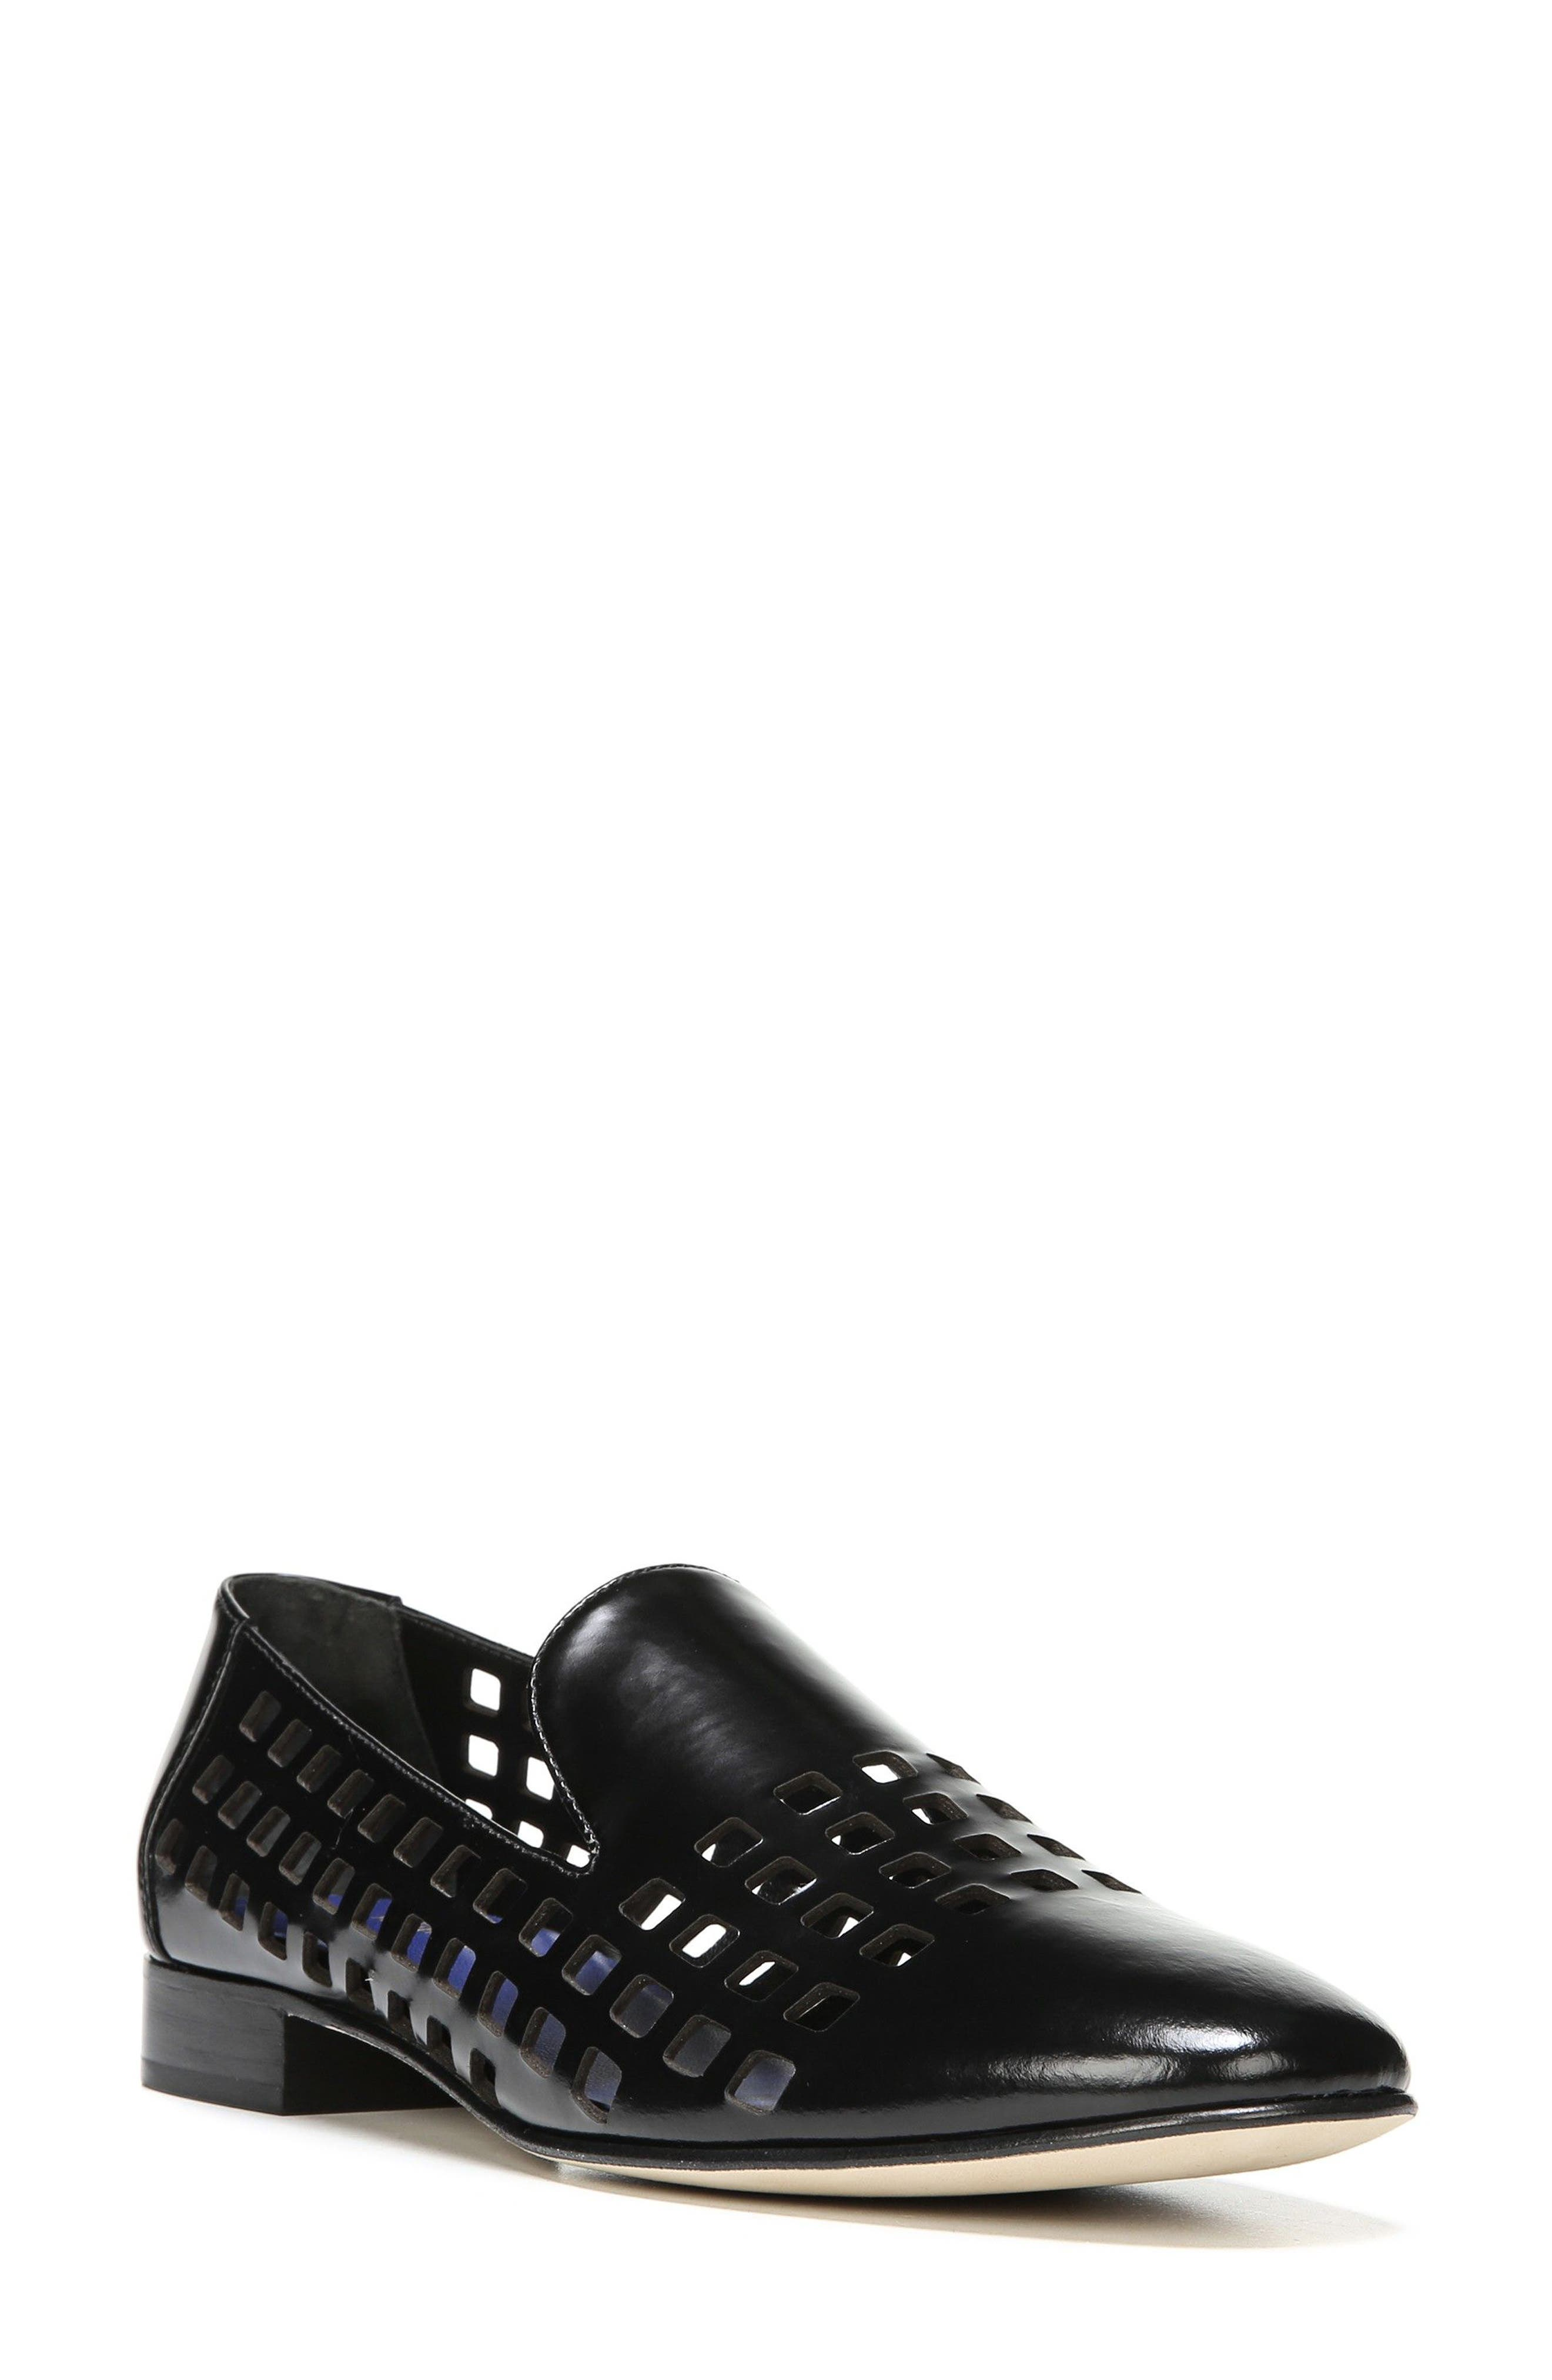 Linz Perforated Loafer,                         Main,                         color, 001